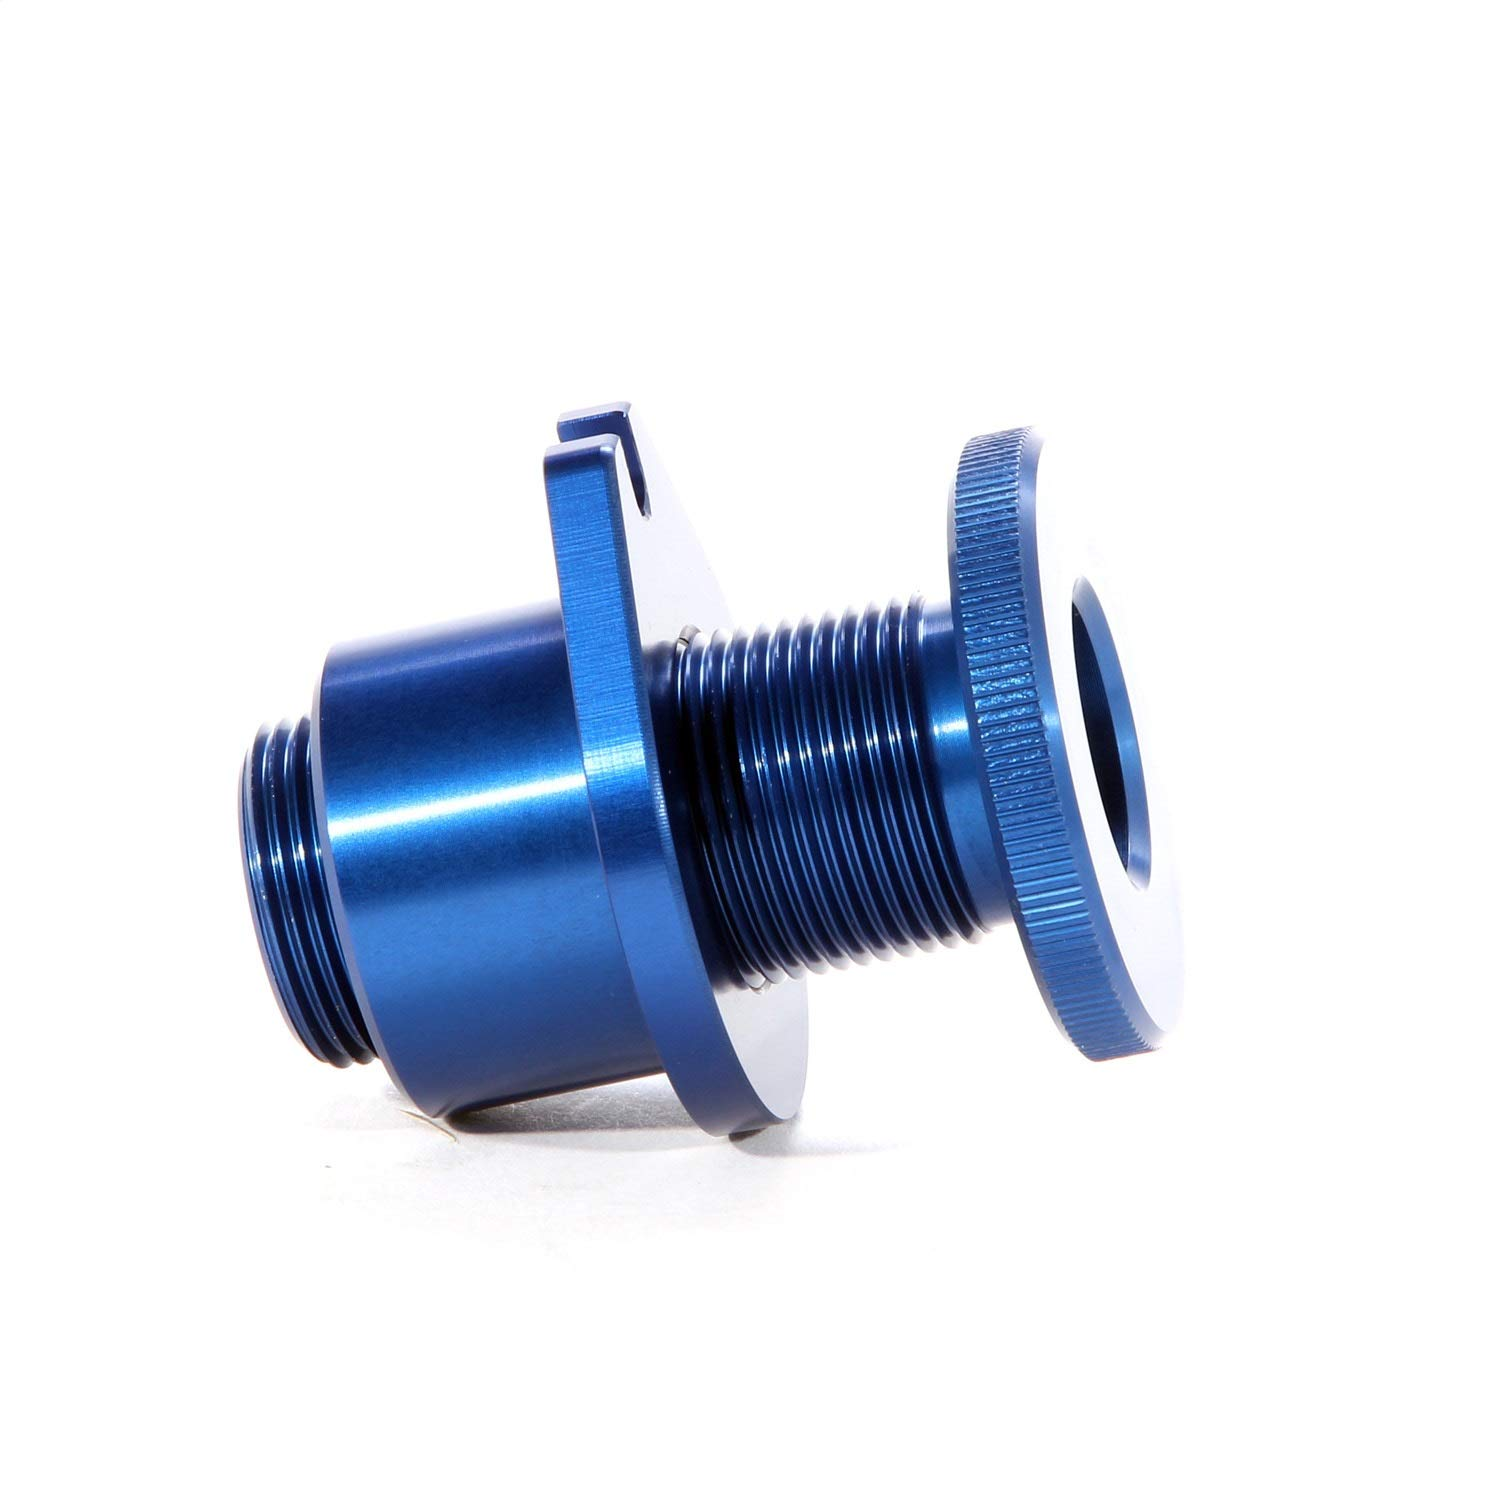 BBK 15050 Clutch Cable Under Hood Firewall Adjuster For Ford Mustang - Blue Anodized Finish BBK Performance